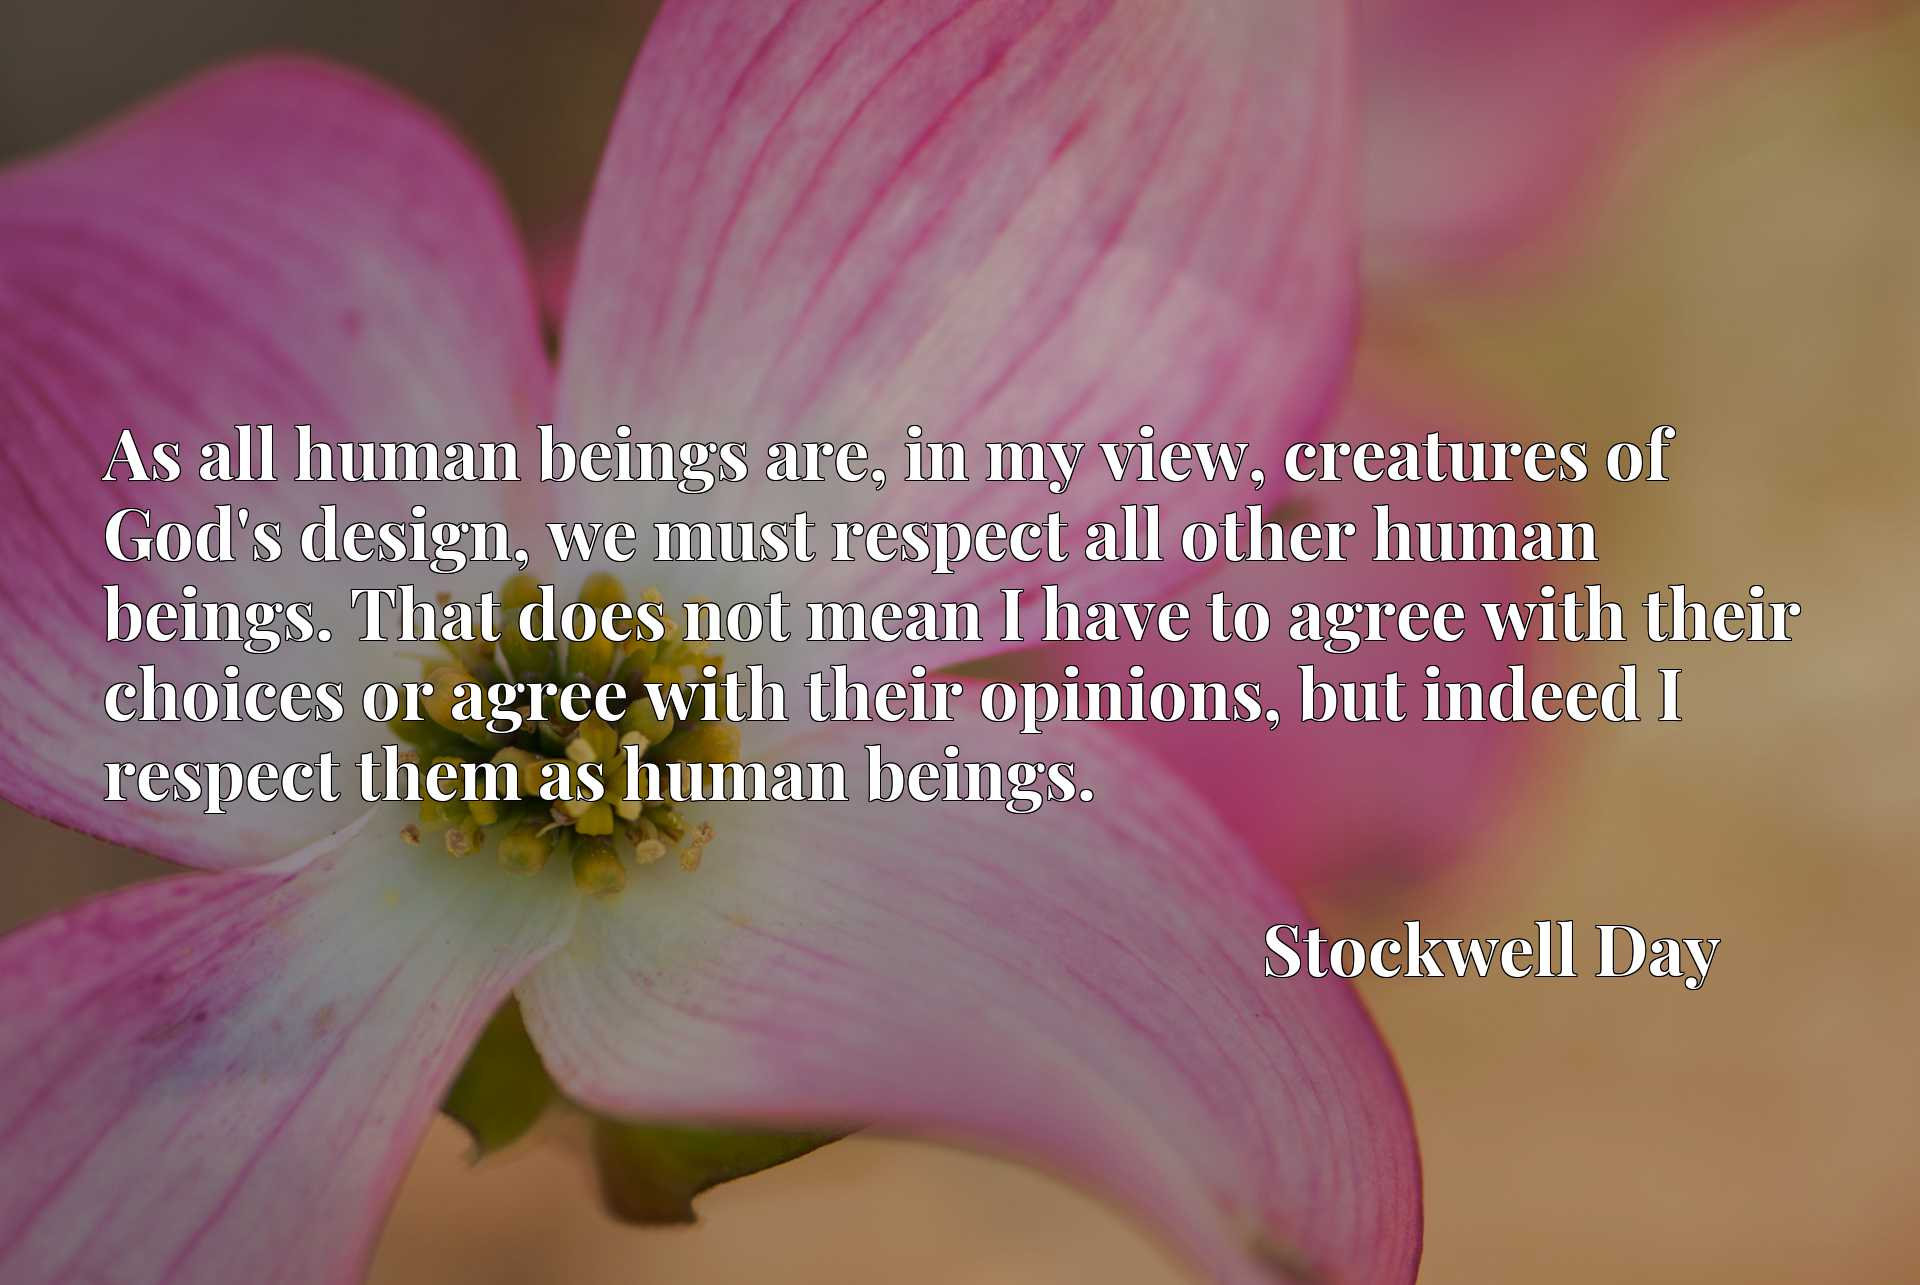 As all human beings are, in my view, creatures of God's design, we must respect all other human beings. That does not mean I have to agree with their choices or agree with their opinions, but indeed I respect them as human beings.